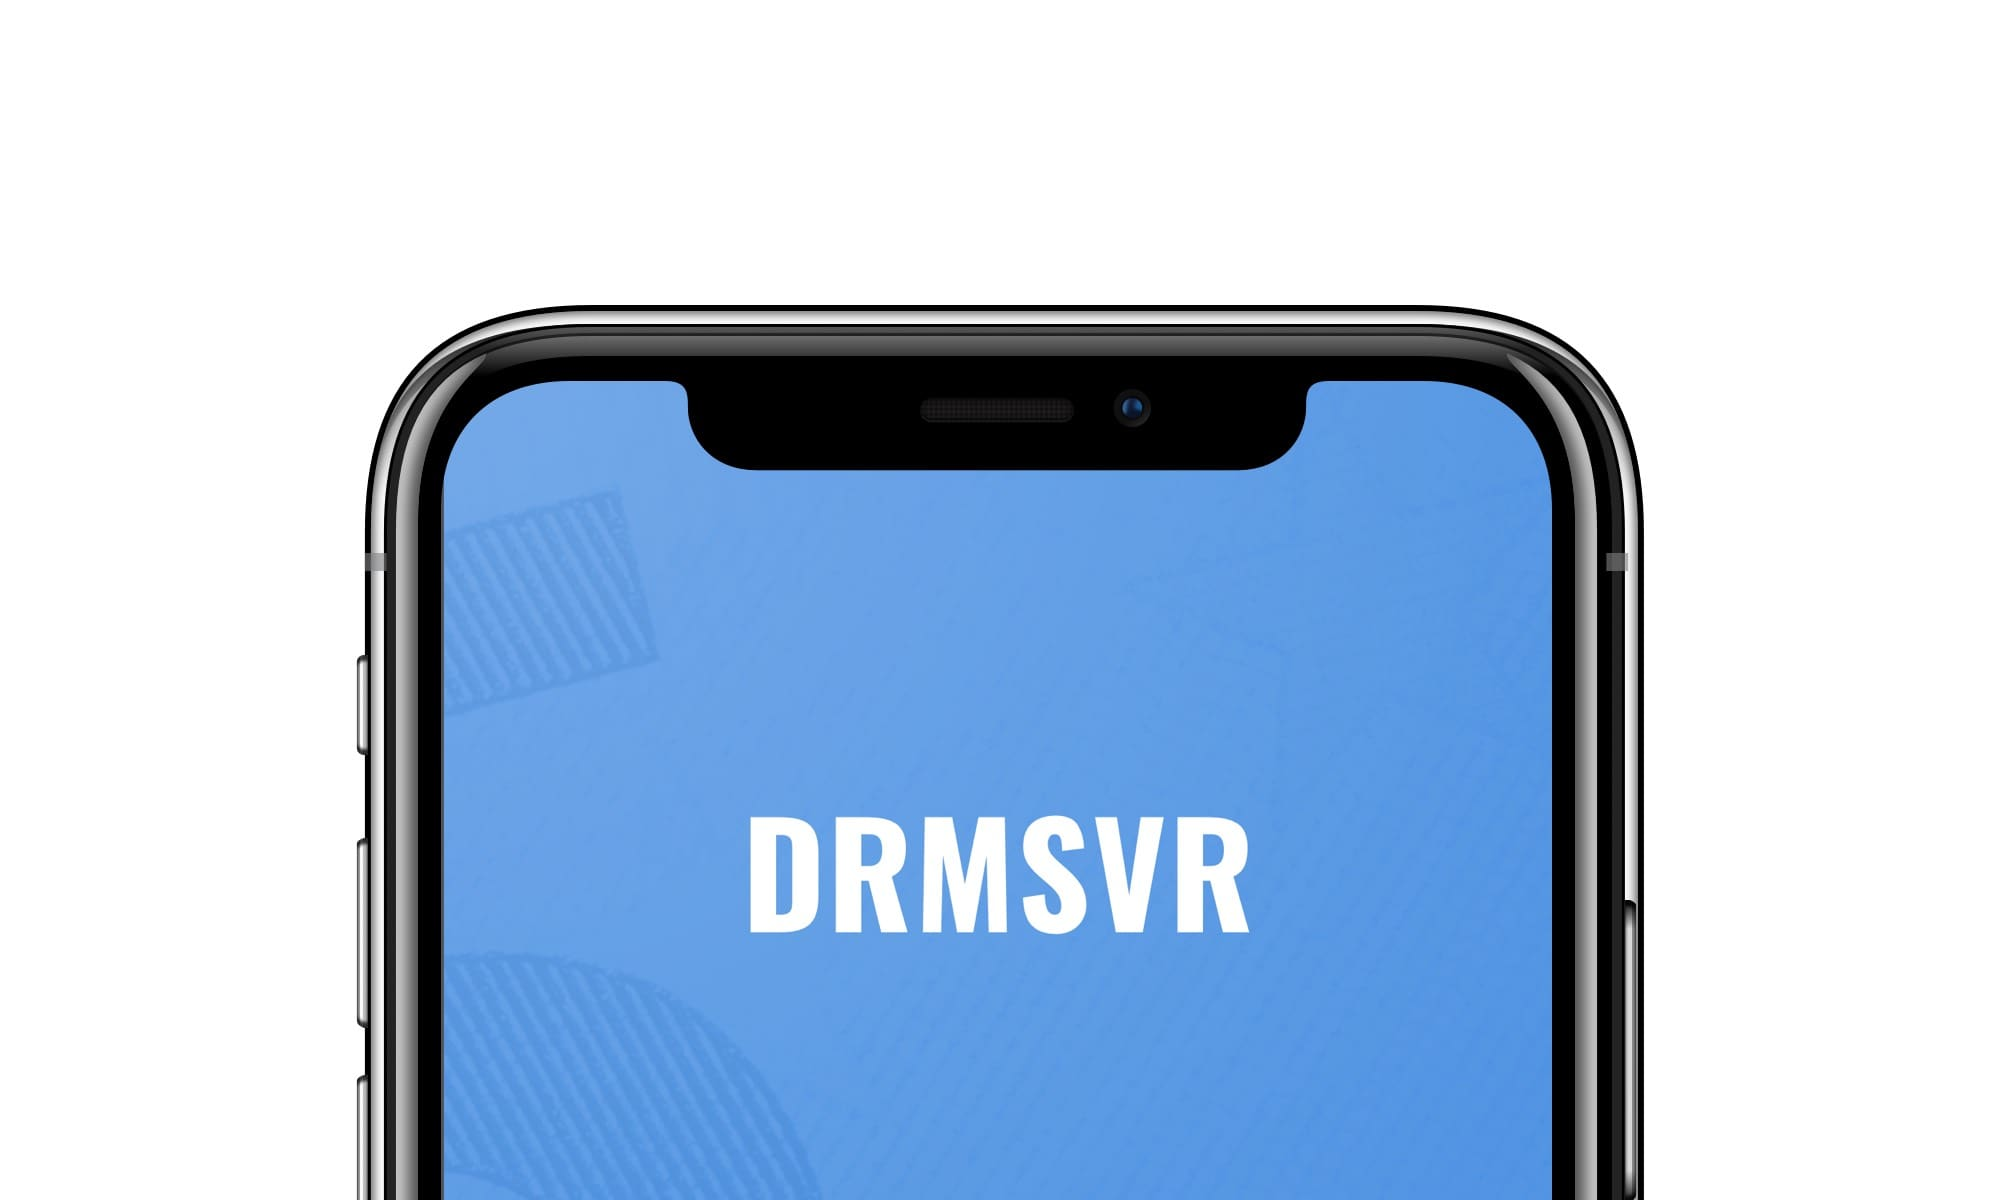 DRMSVR (Dream Saver)